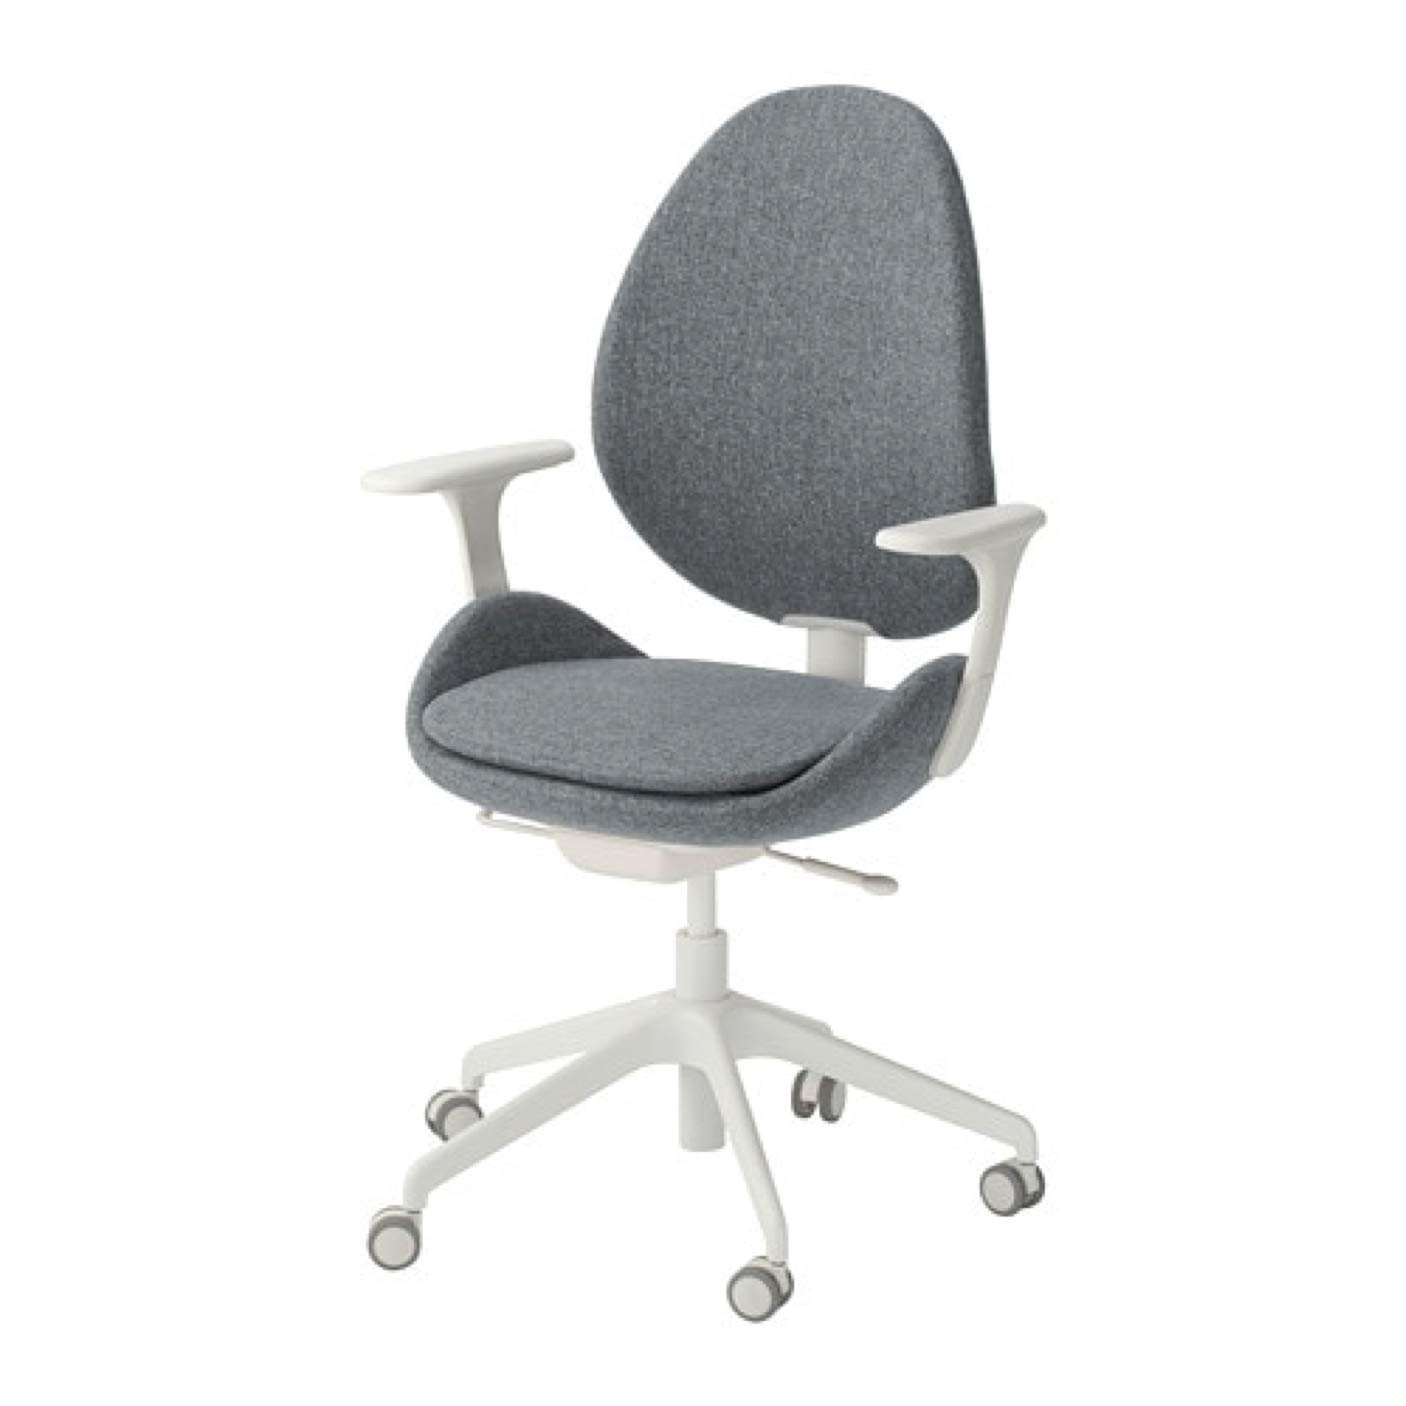 Chair - Adjustable sewing chair - Gray White